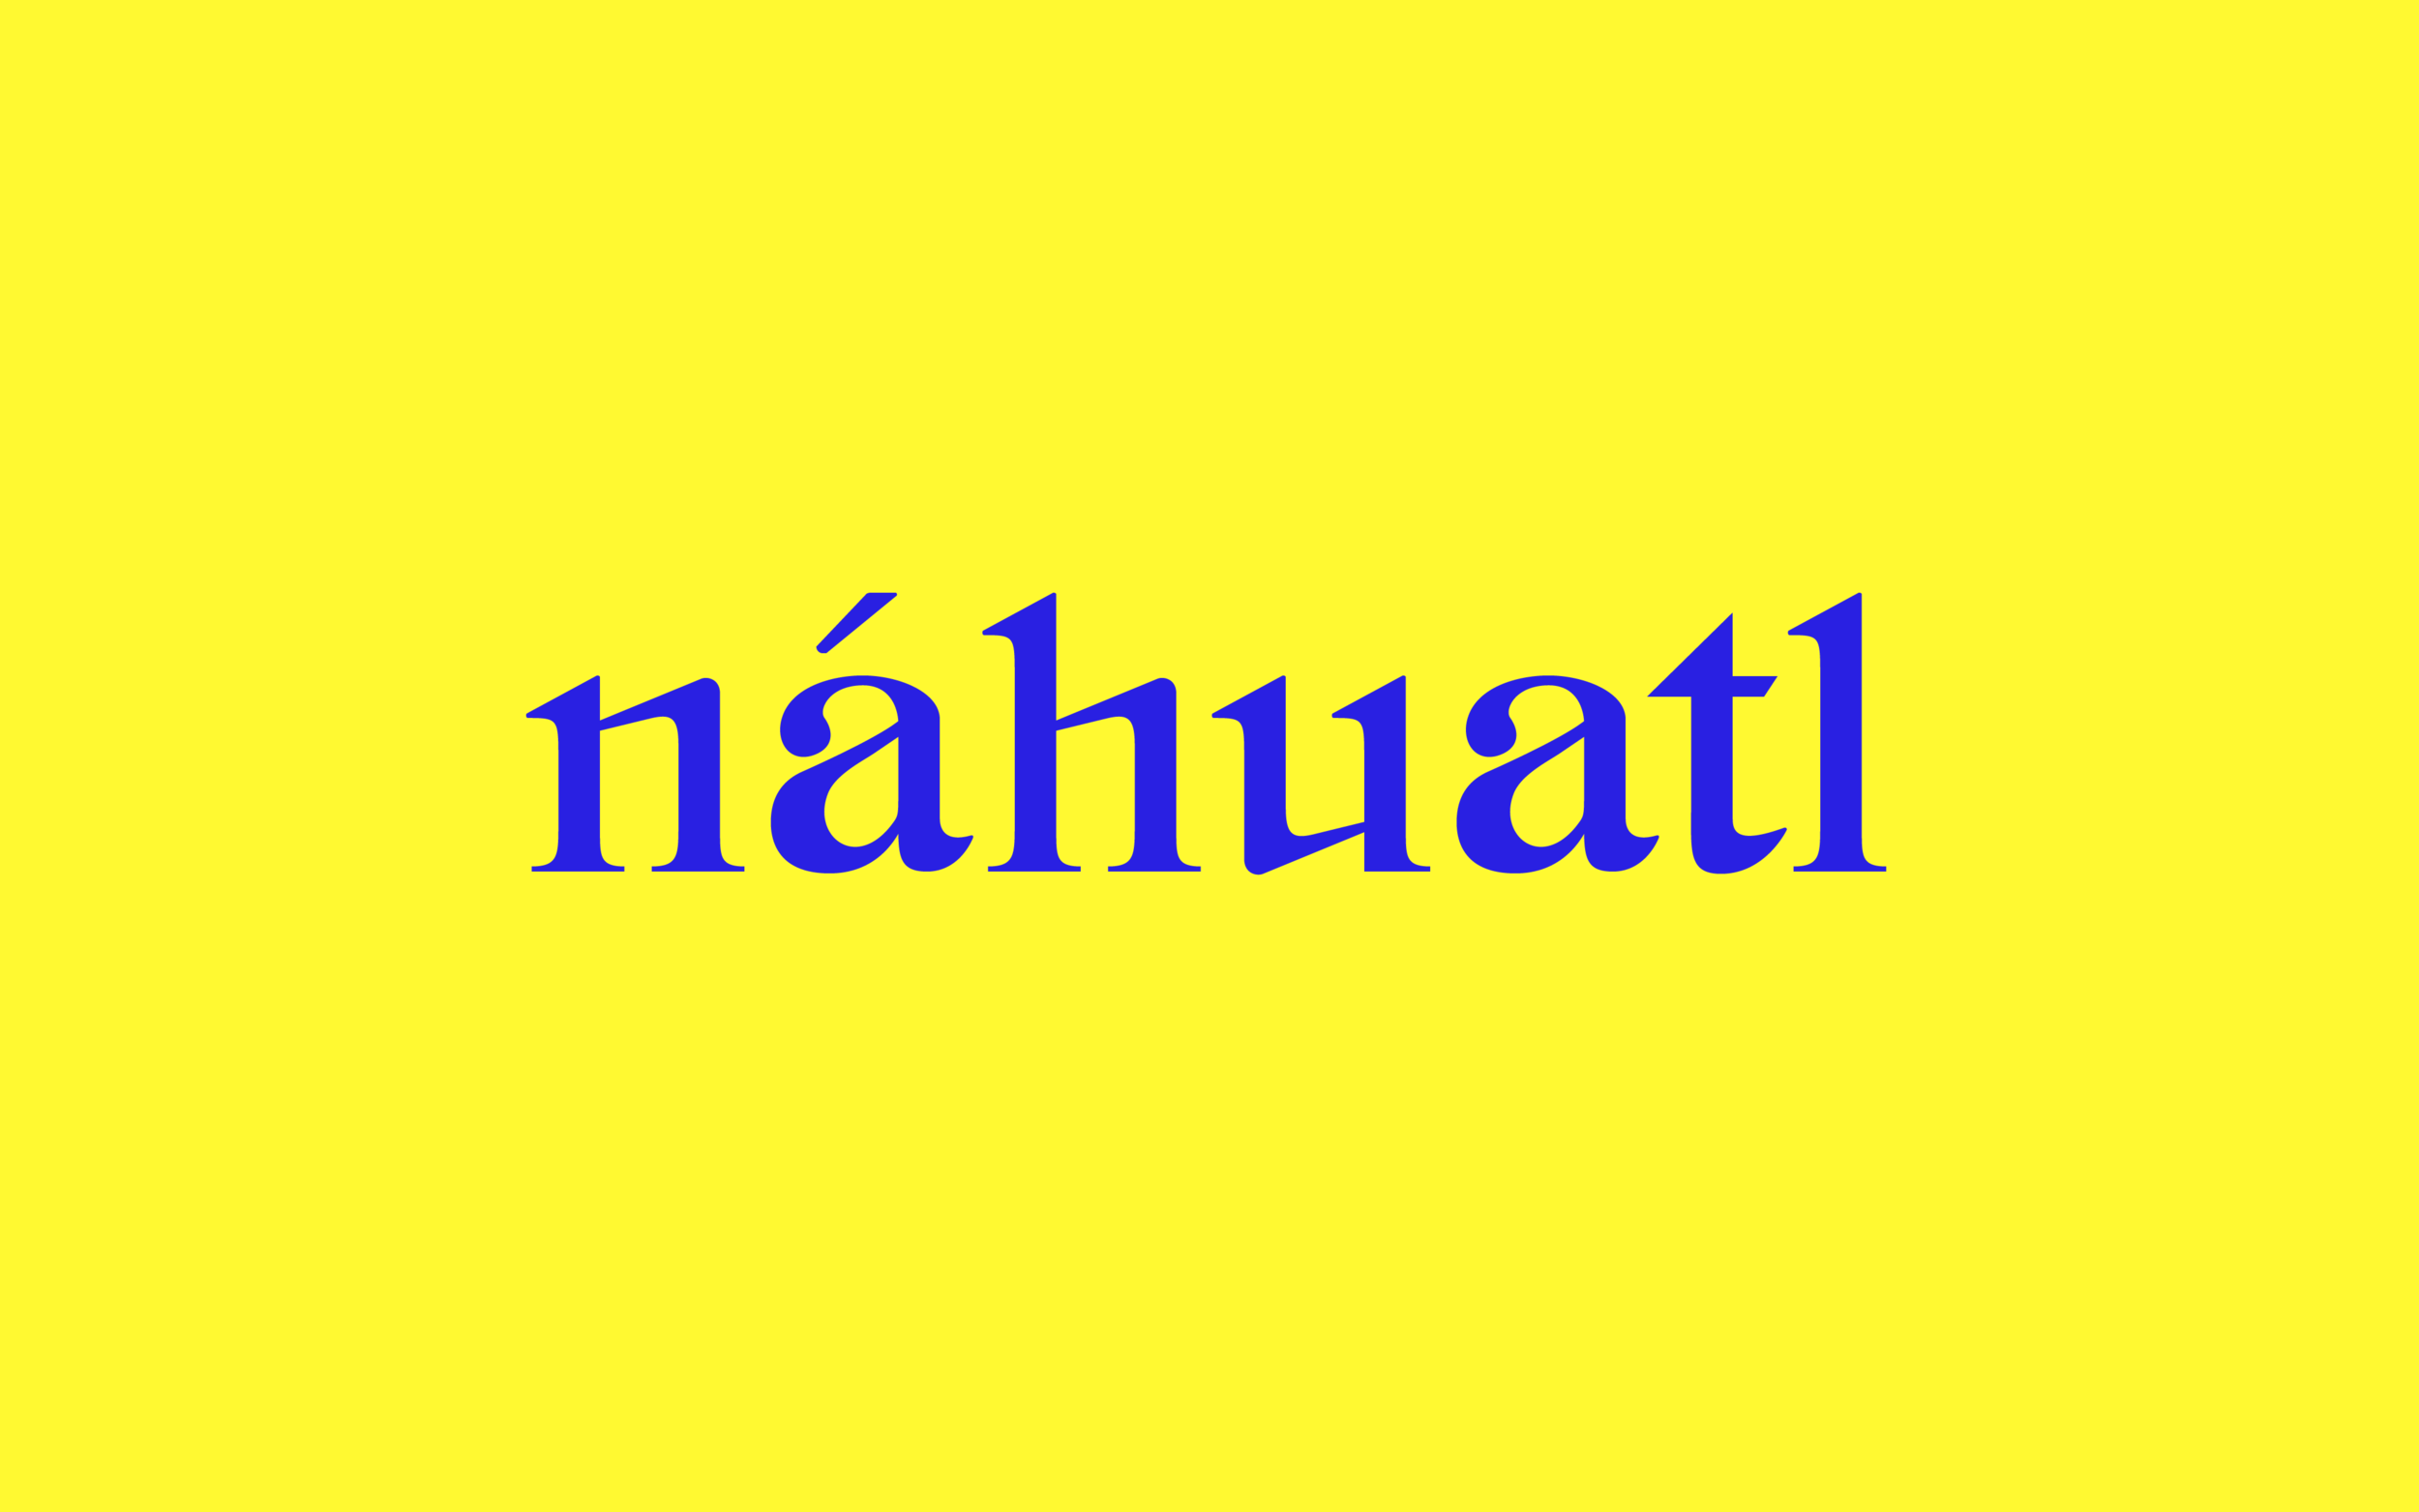 Post  specimen showcasing  náhuatl , a language spoken in Mexico dating back to the 5th century.